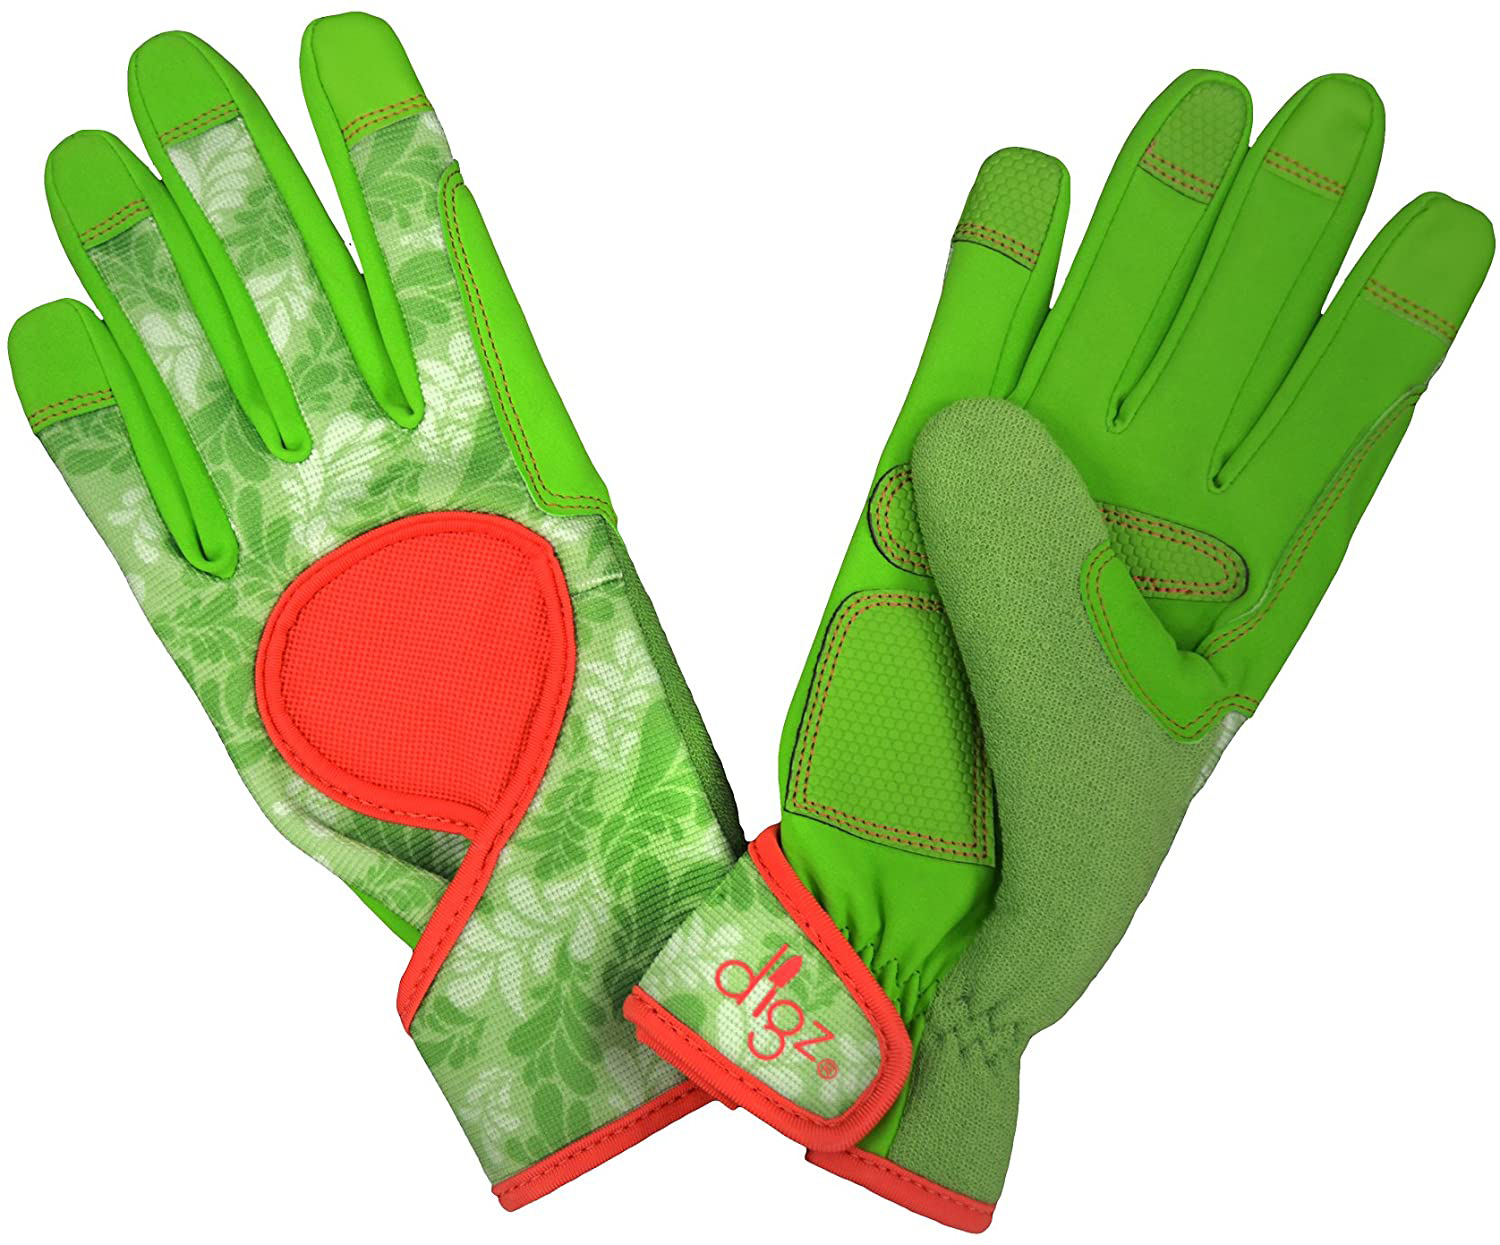 6 Clever Items 8/7/20 - Digz touchscreen gardening gloves